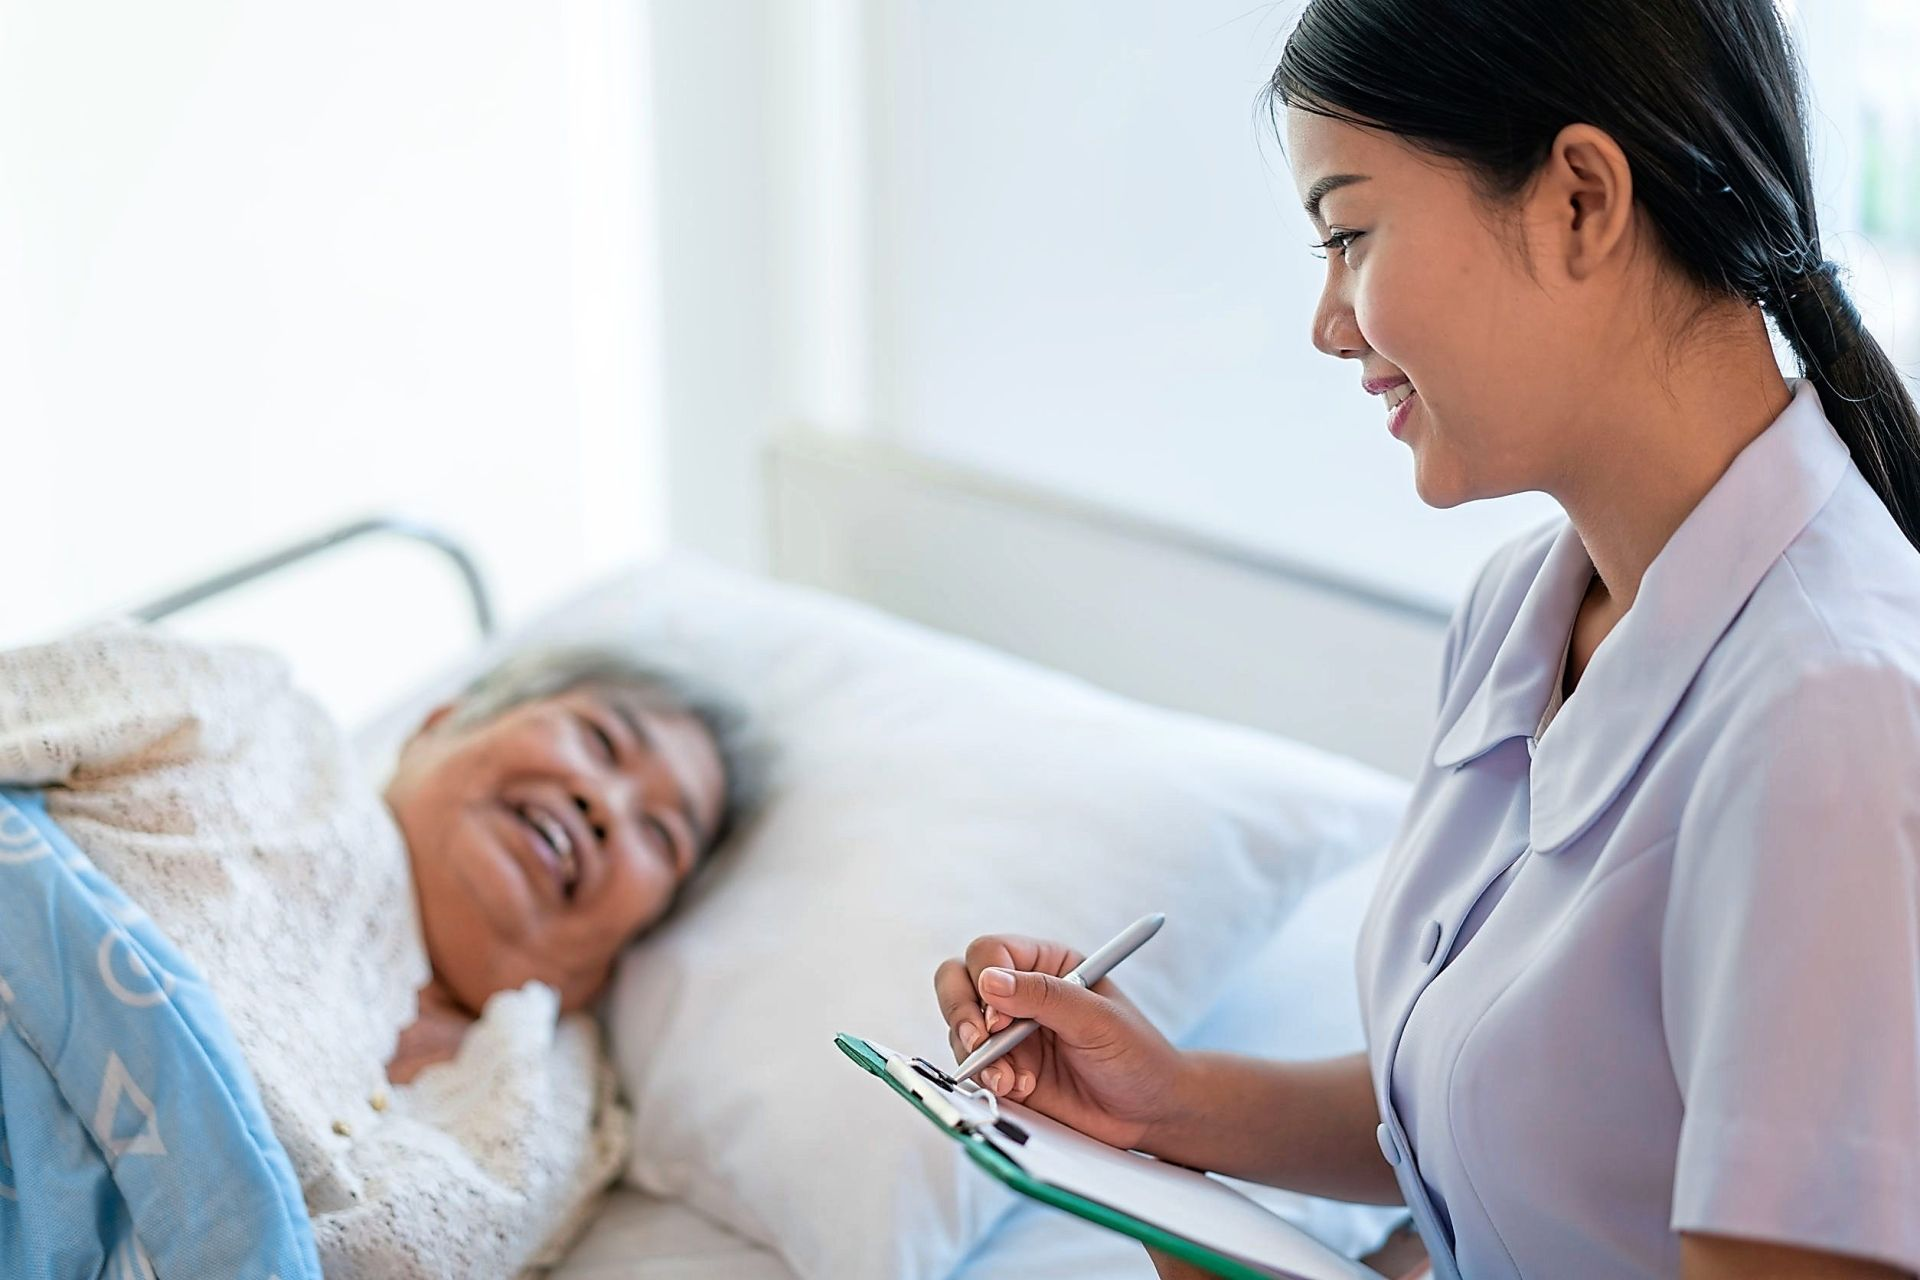 Having a positive mindset is crucial when a patient is undergoing treatment for cancer. - 123rf.com